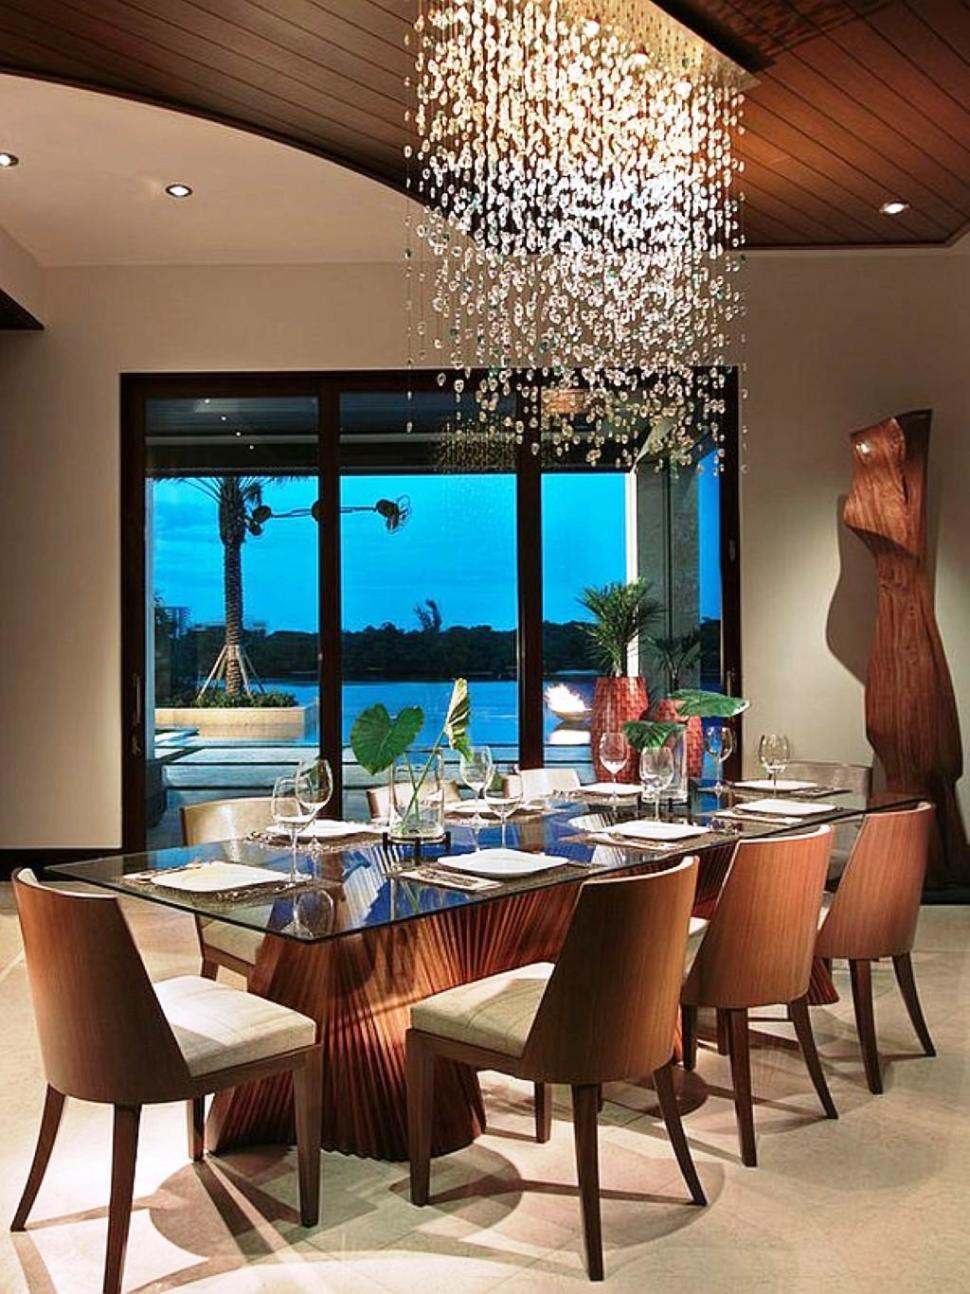 Top 25 of amazing modern dining table decorating ideas to inspire you  amazing modern dining table100    Contemporary Dining Room Light     rustic dining room light  . Hanging Light Fixtures For Dining Rooms. Home Design Ideas